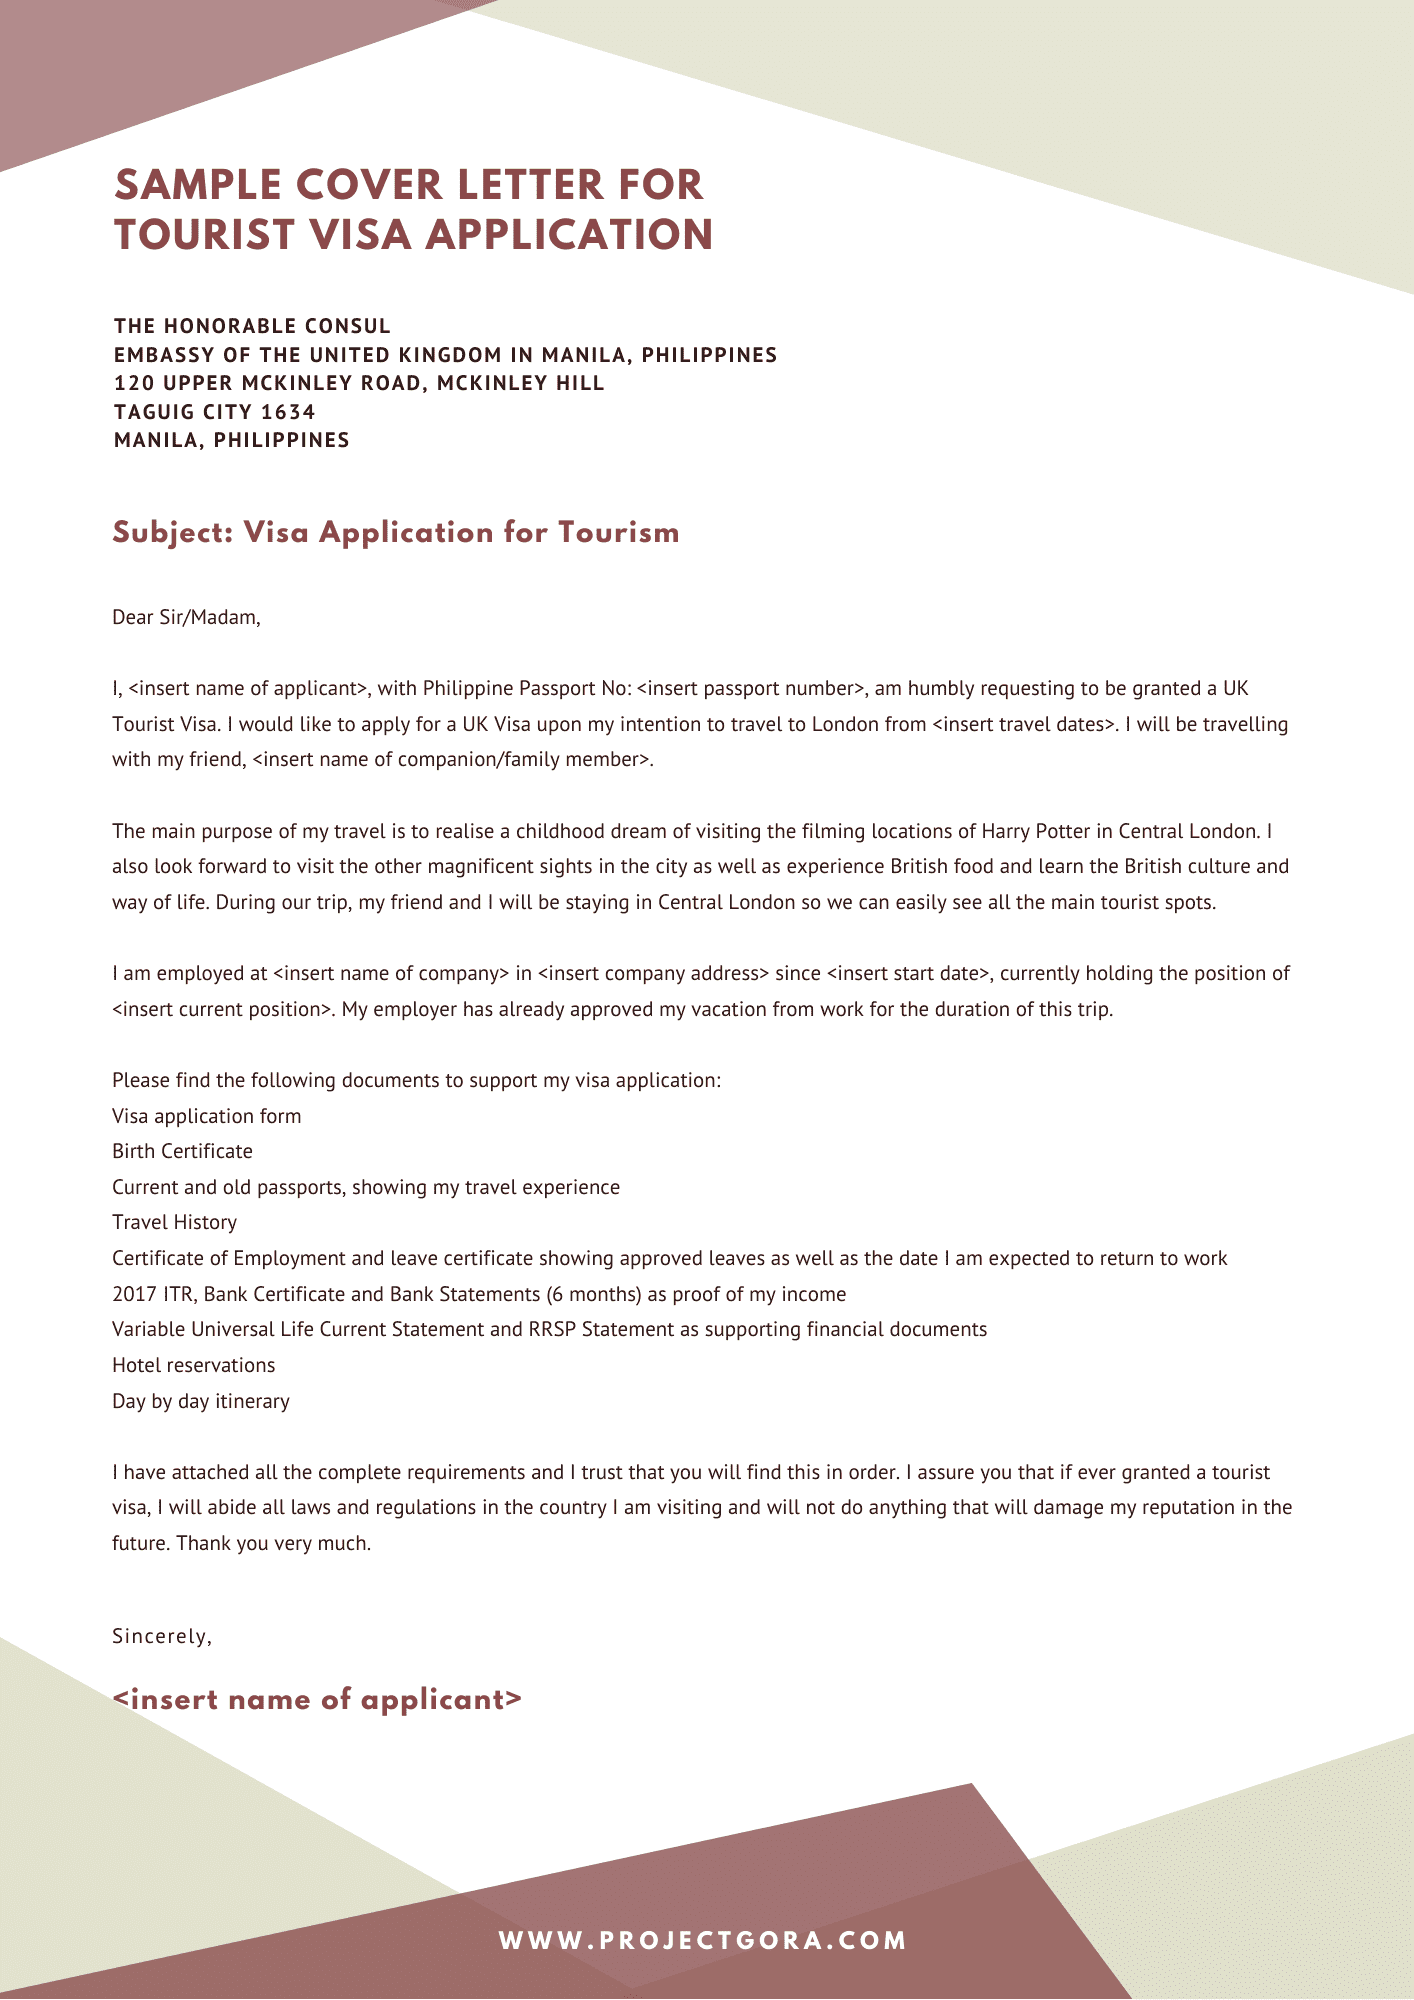 Sample Cover Letter For Uk Tourist Visa Application In The Philippines Project Gora